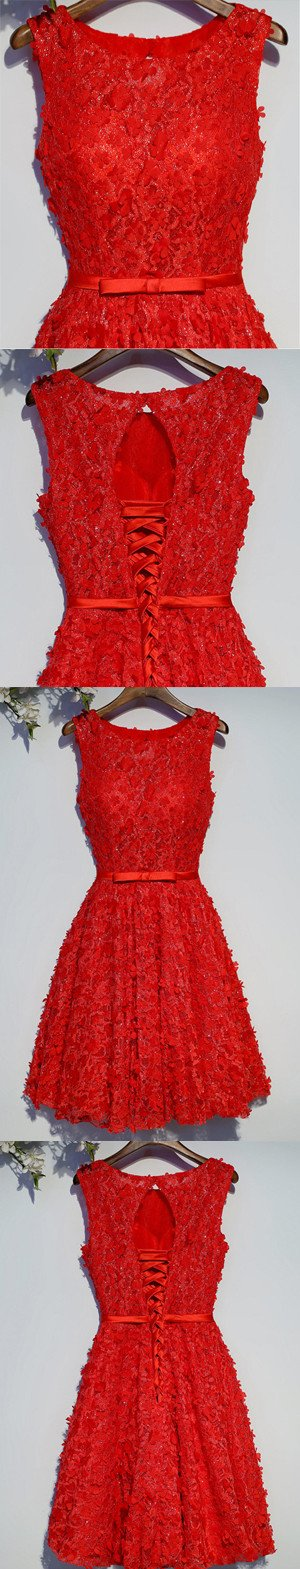 Red Lace Beaded Round Neckline Homecoming Prom Dresses, Affordable Corset Back Short Party Prom Dresses, Perfect Homecoming Dresses, CM253